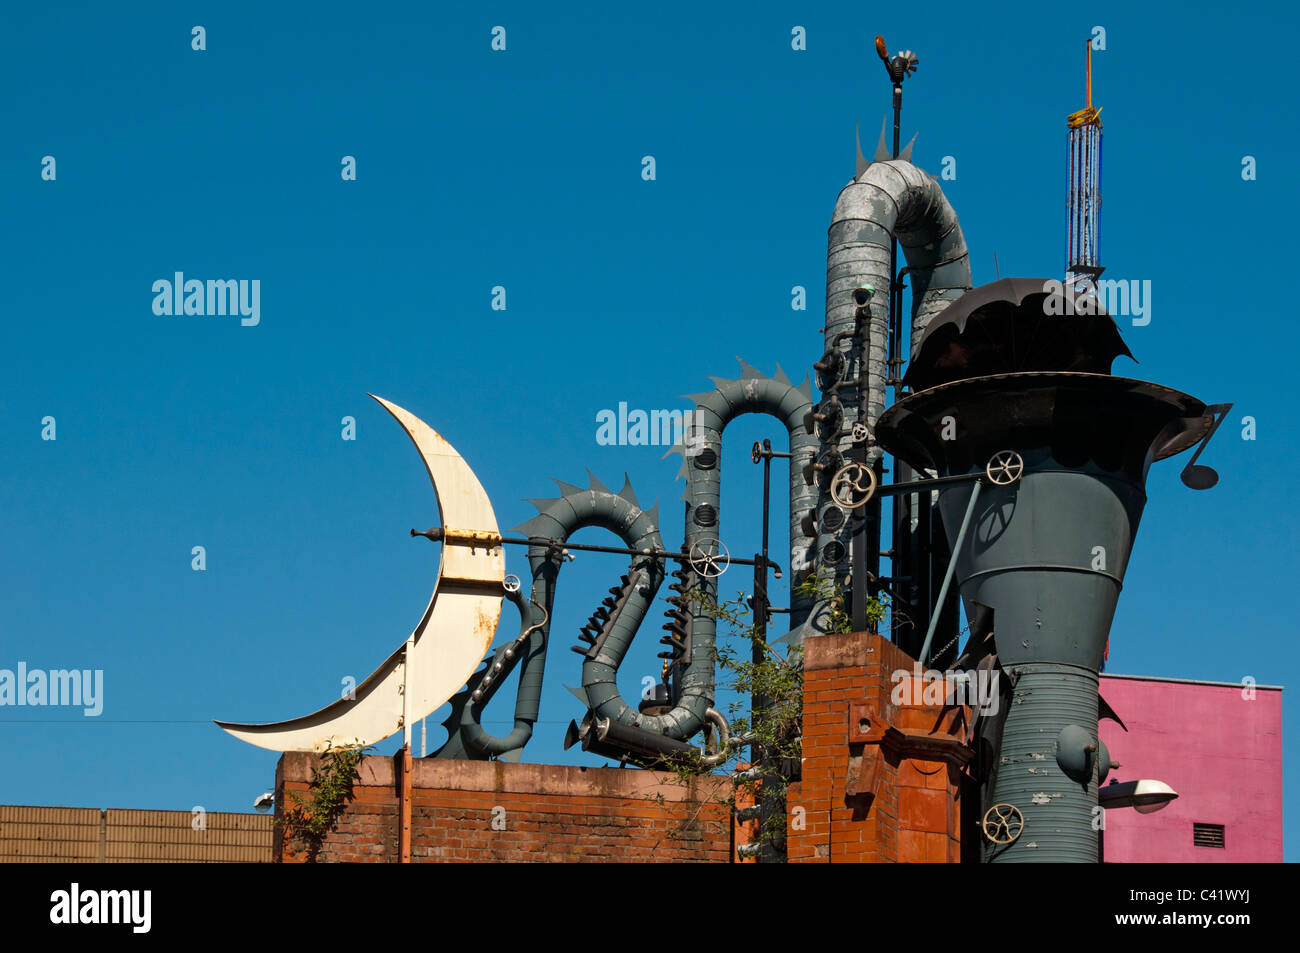 'The Tib Street Horn'.  A sculpture by David Kemp.  Northern Quarter, Manchester, England, UK - Stock Image